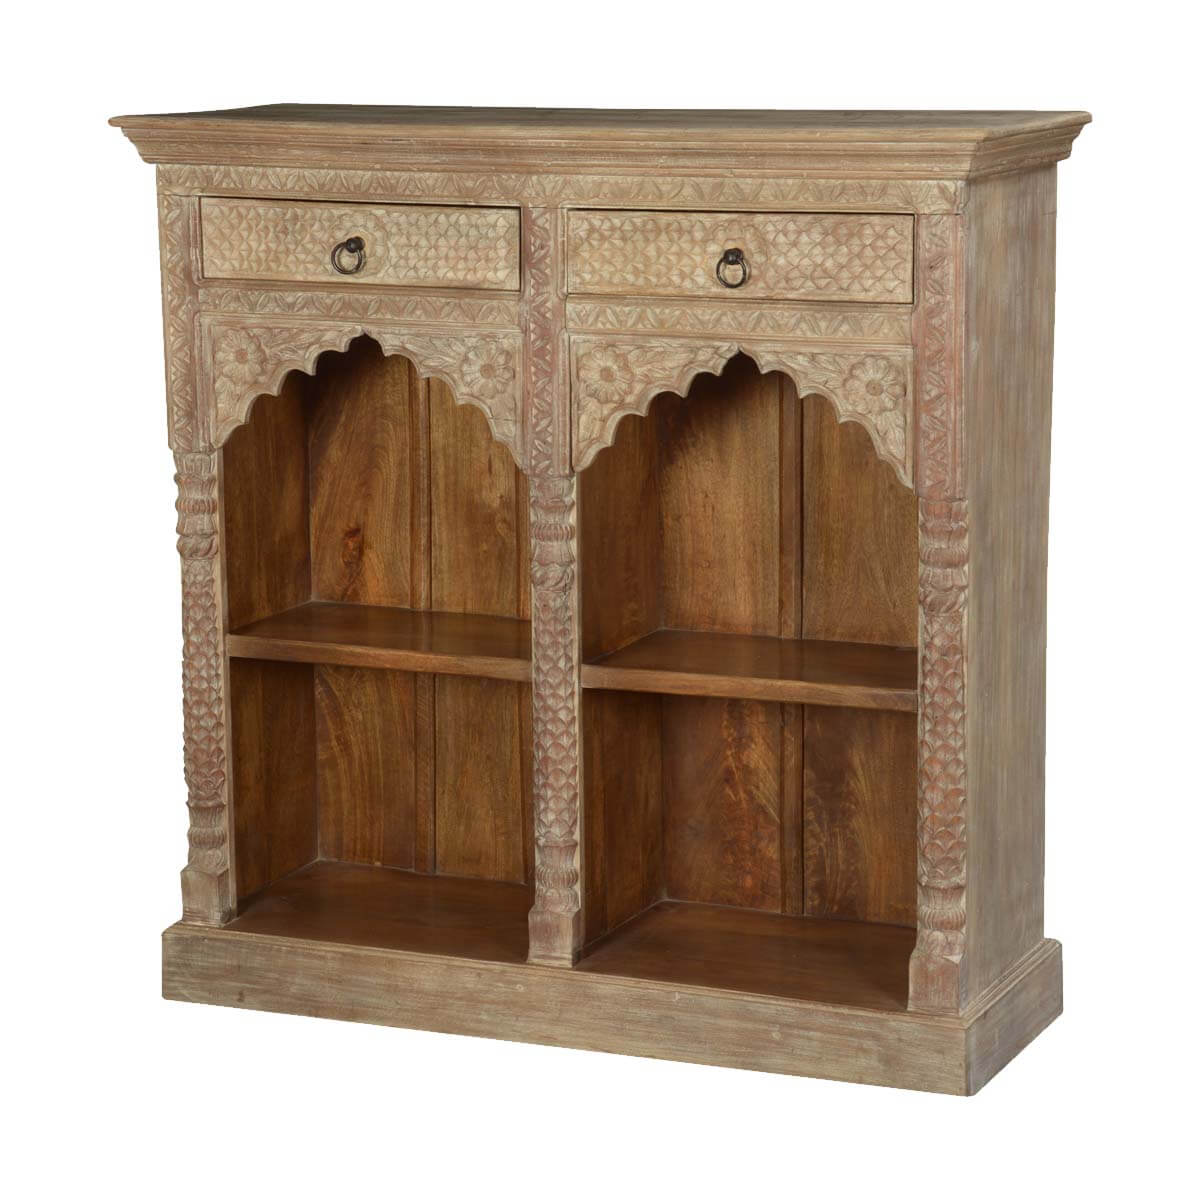 Dothan 4 Open Shelf Rustic Solid Wood Arched Bookcase With Drawers